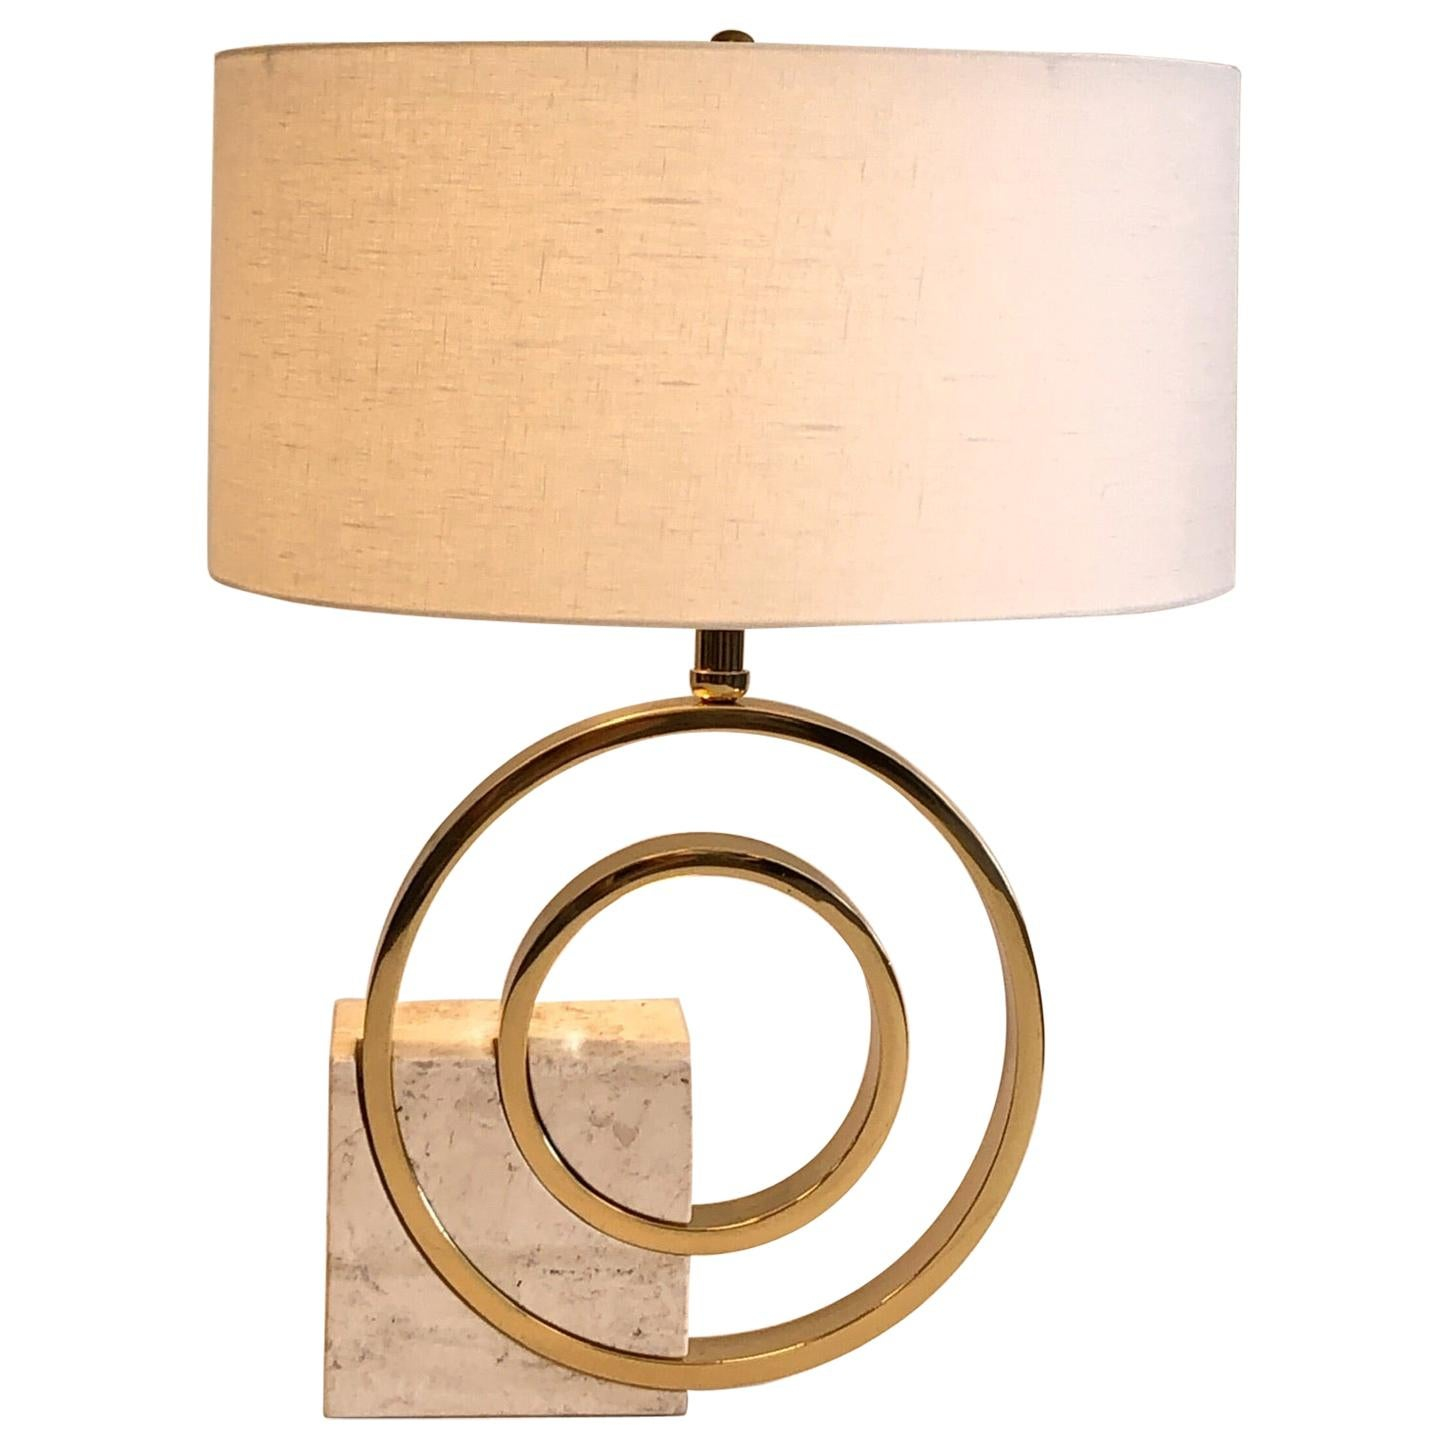 Italian Travertine and Brass Table Lamp by Giovanni Banci